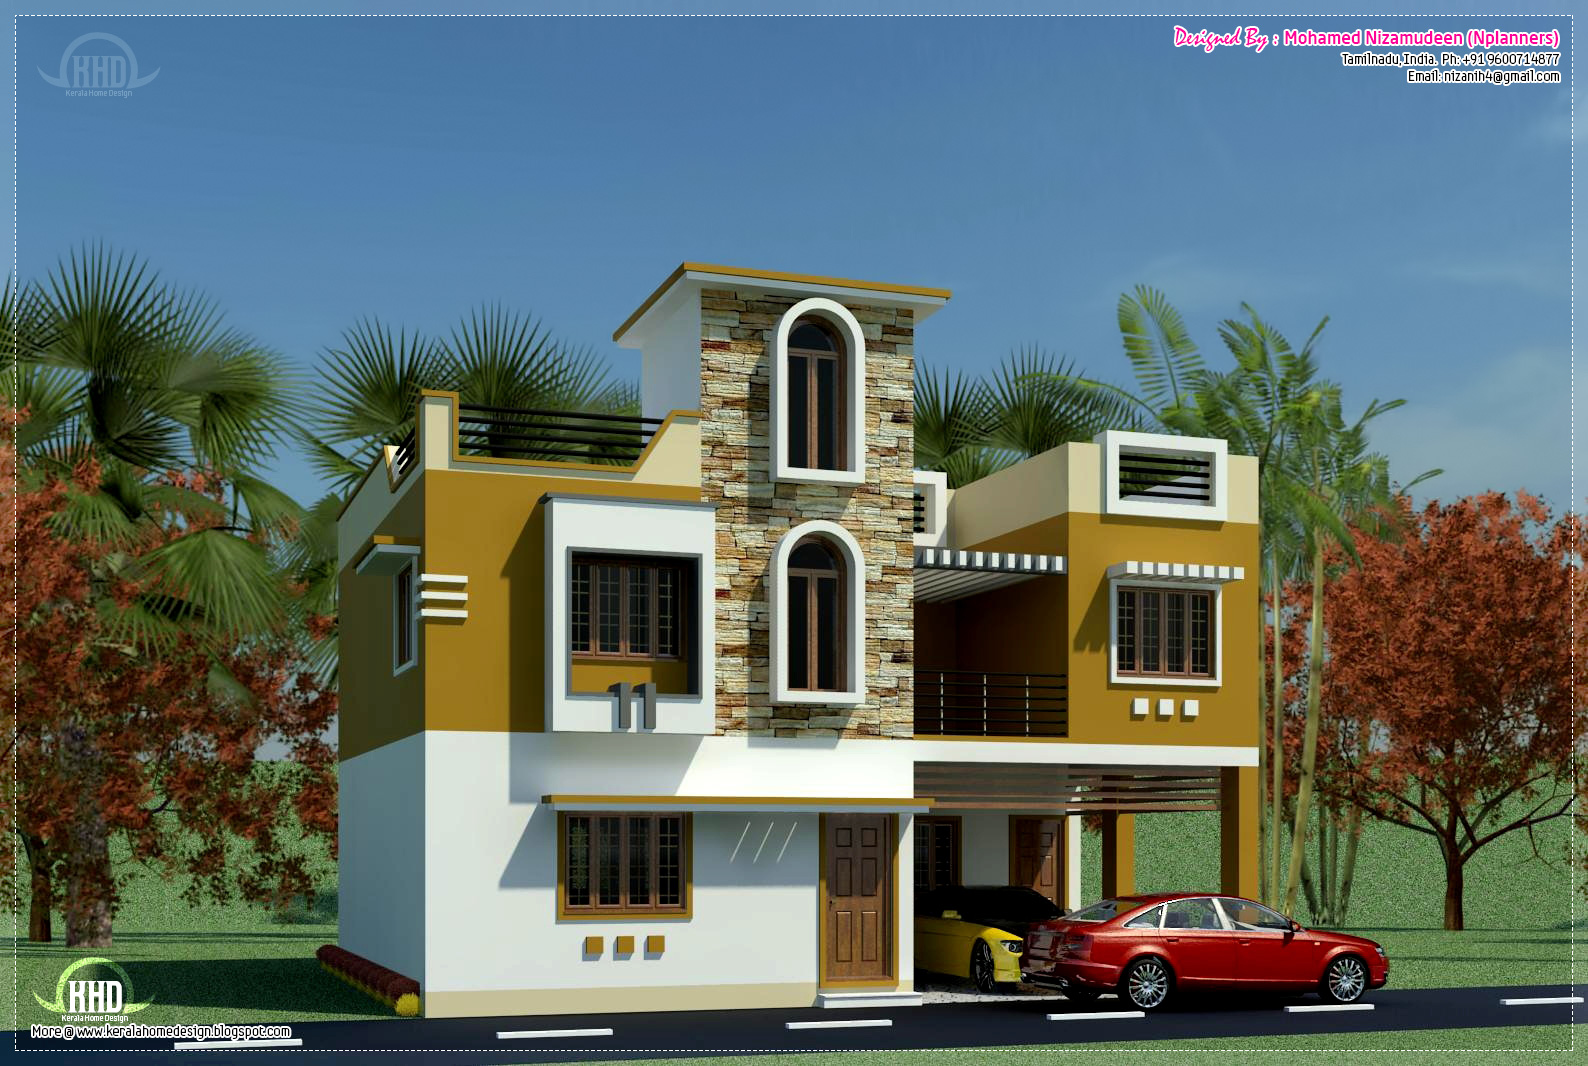 House specification - Exterior designs of houses in india ...